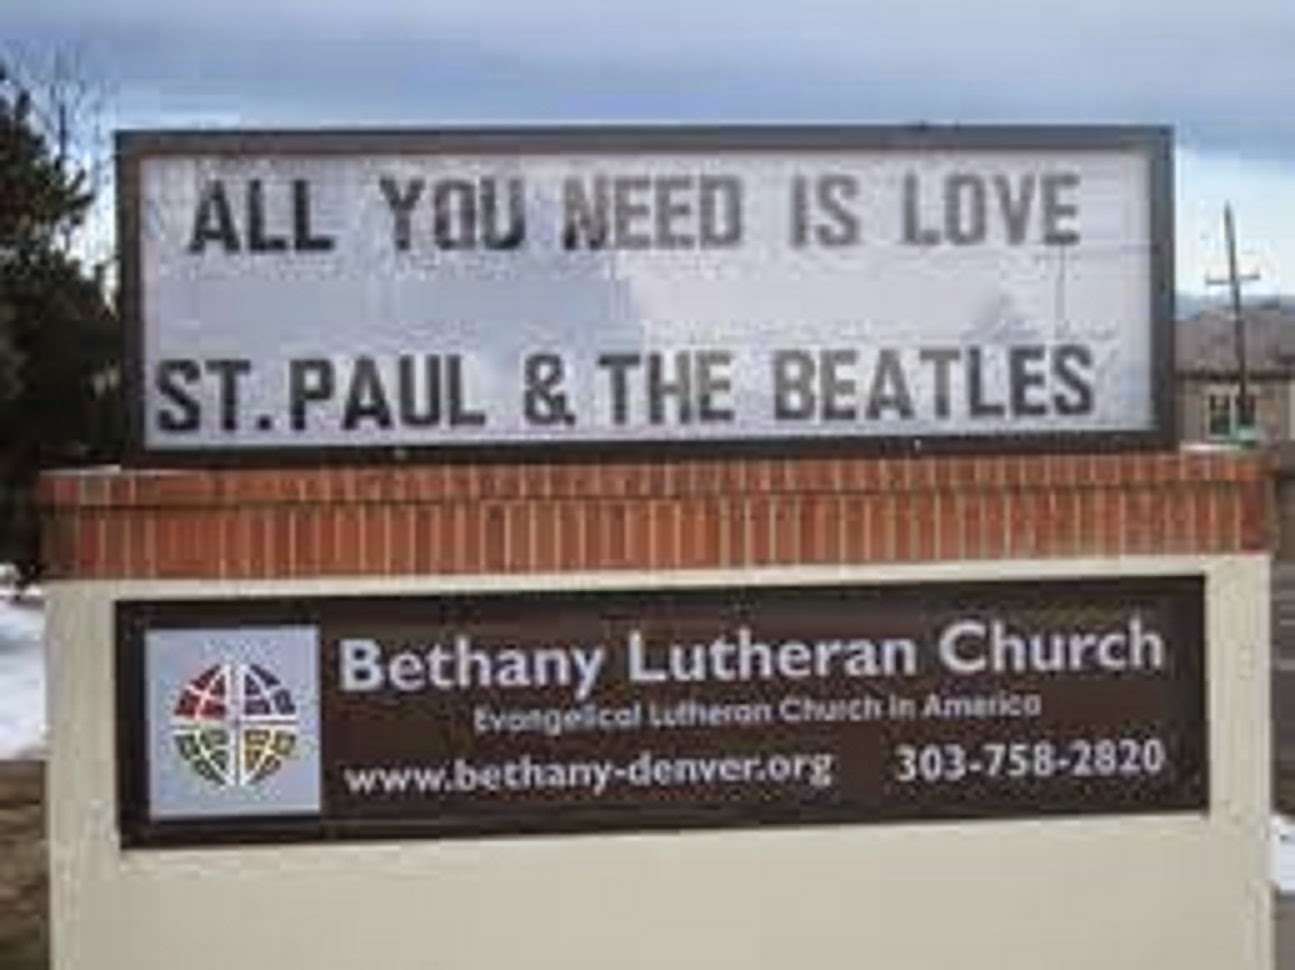 THE GOSPEL ACCORDING TO ST. PAUL AND THE BEATLES